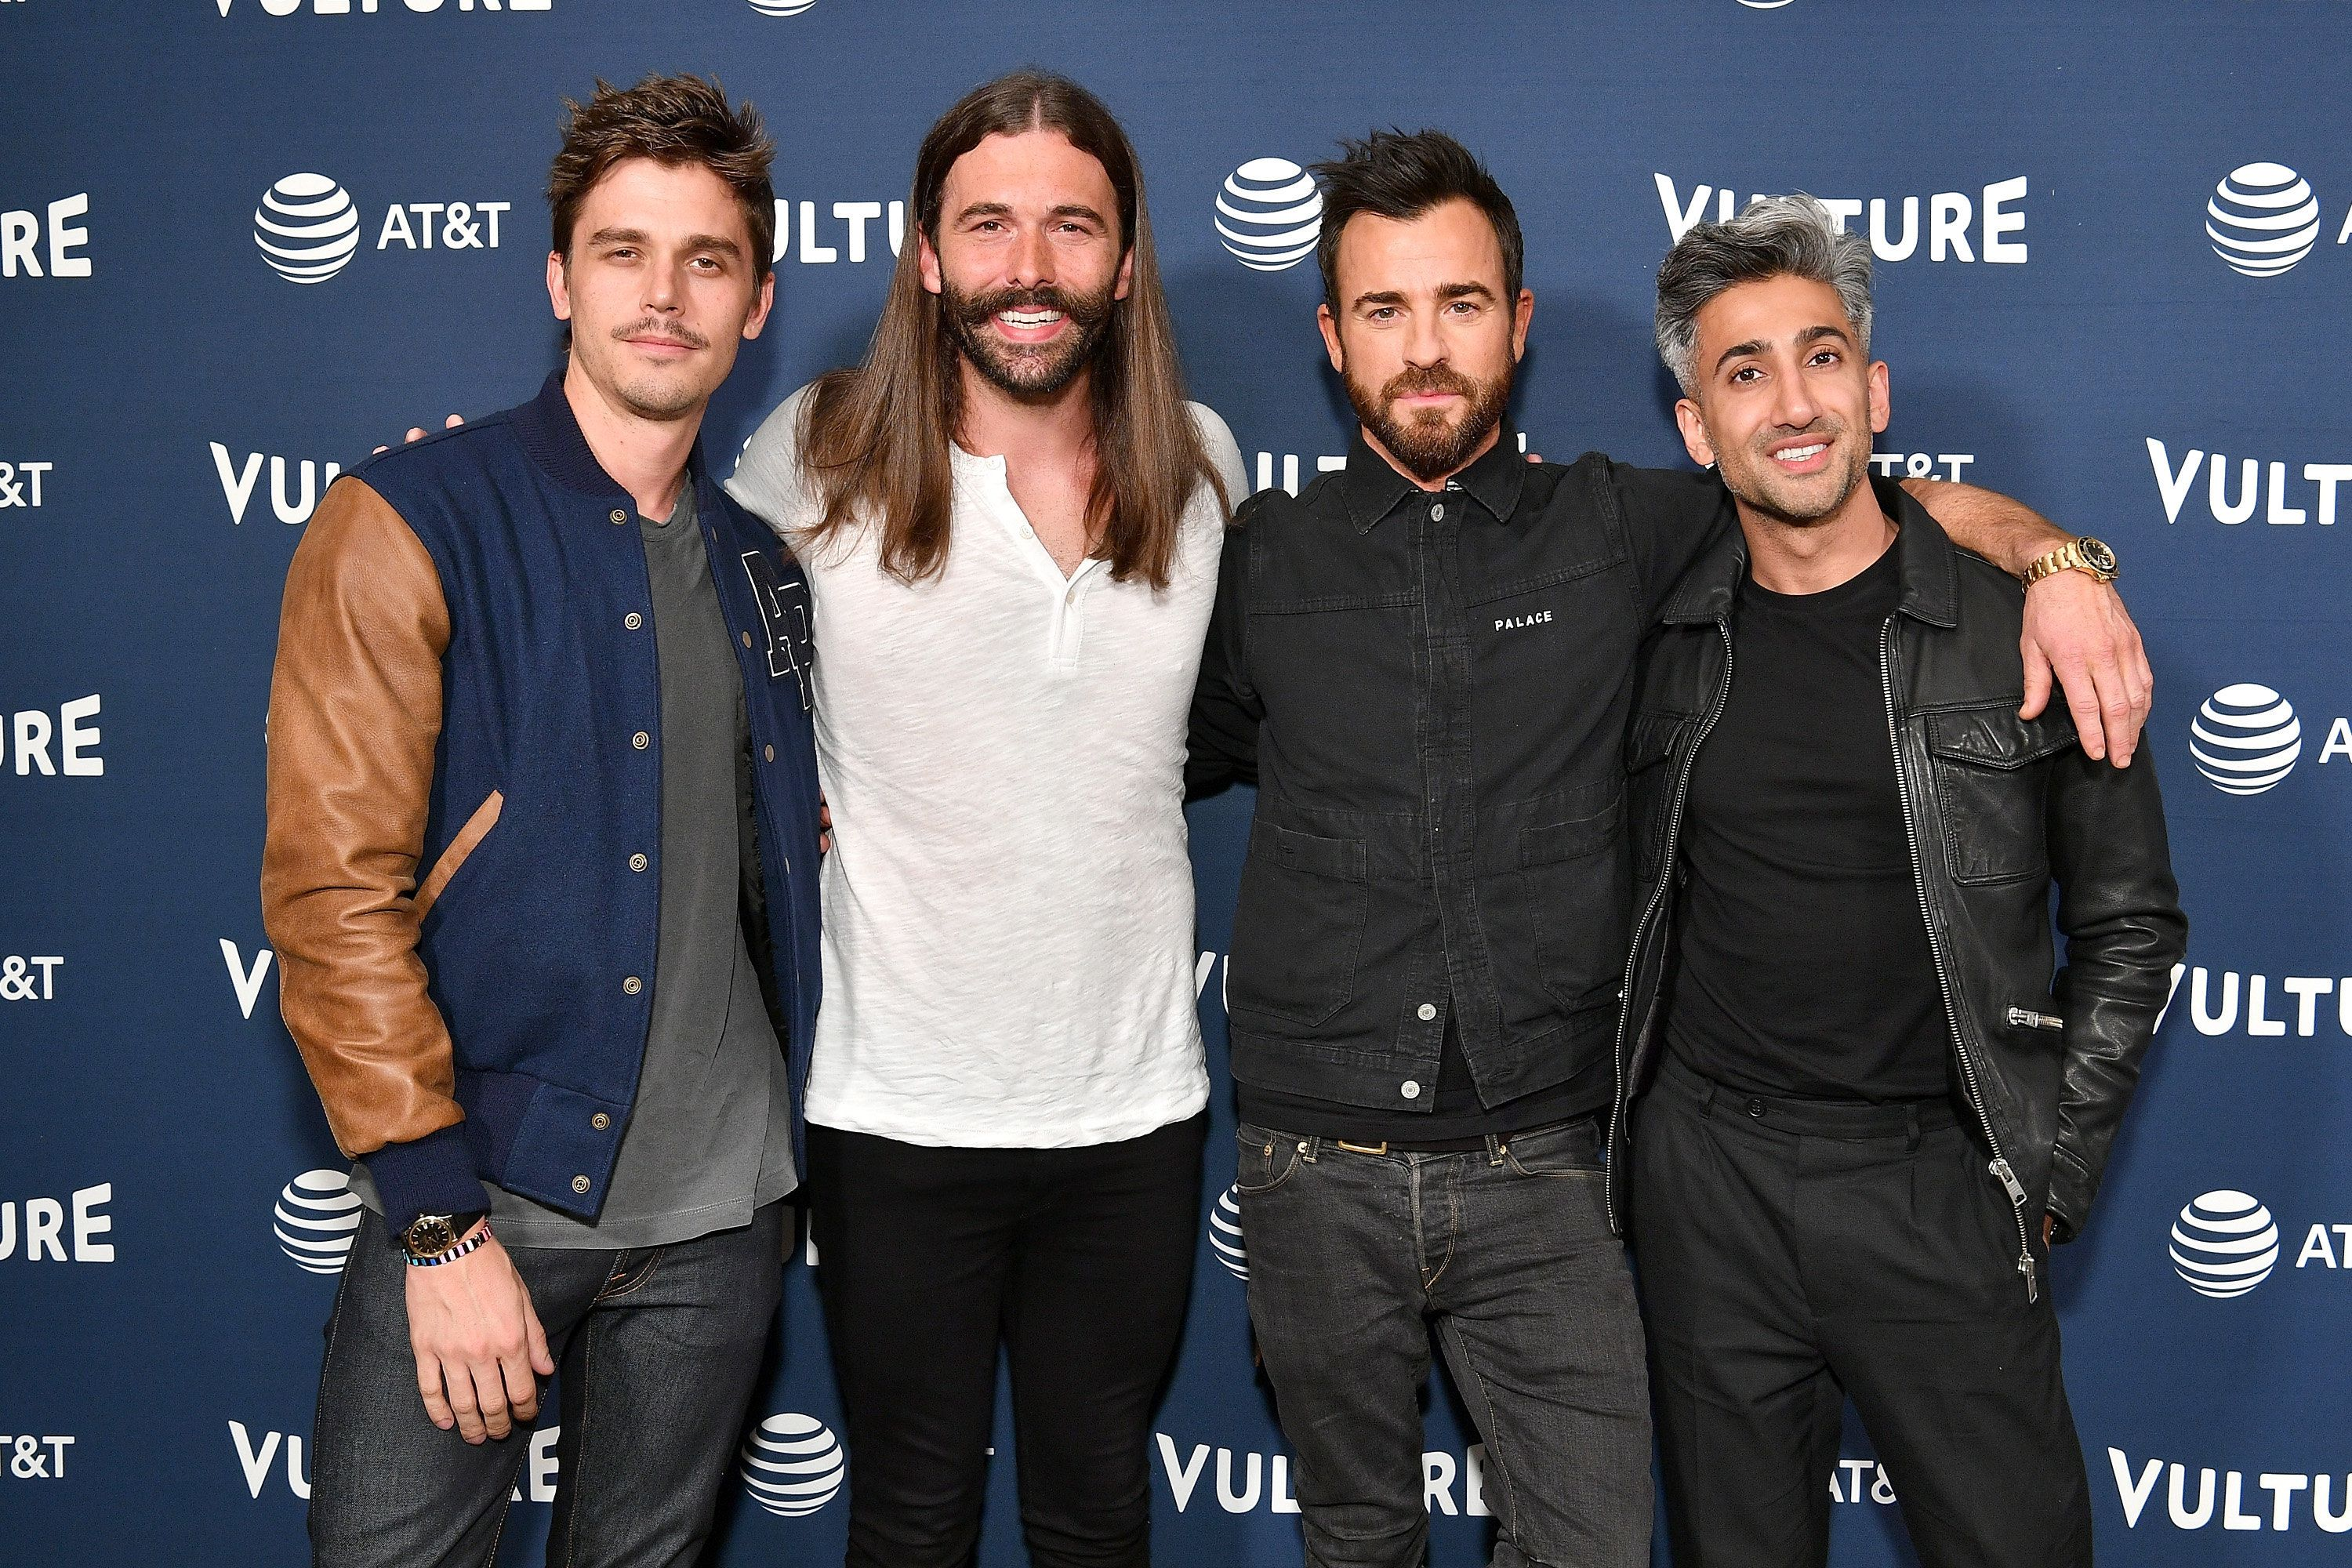 NEW YORK, NY - MAY 20:  Antoni Porowski, Jonathan Van Ness, Justin Theroux, and Tan France attend Day Two of the Vulture Festival Presented By AT&T at Milk Studios on May 20, 2018 in New York City.  (Photo by Dia Dipasupil/Getty Images for Vulture Festival)